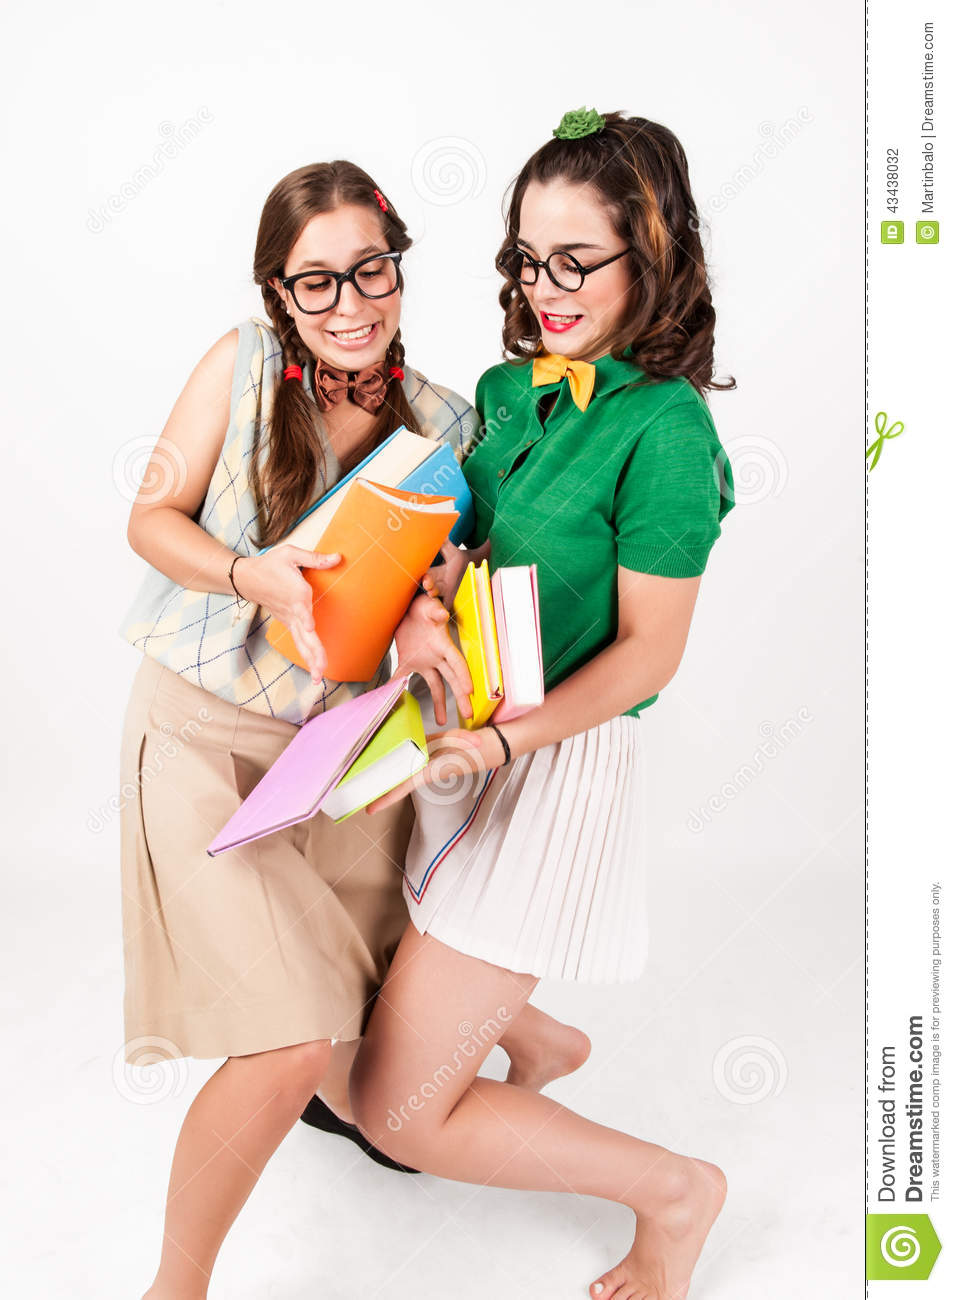 Cute Nerdy Girls Bump Into Each Other. Stock Photo.